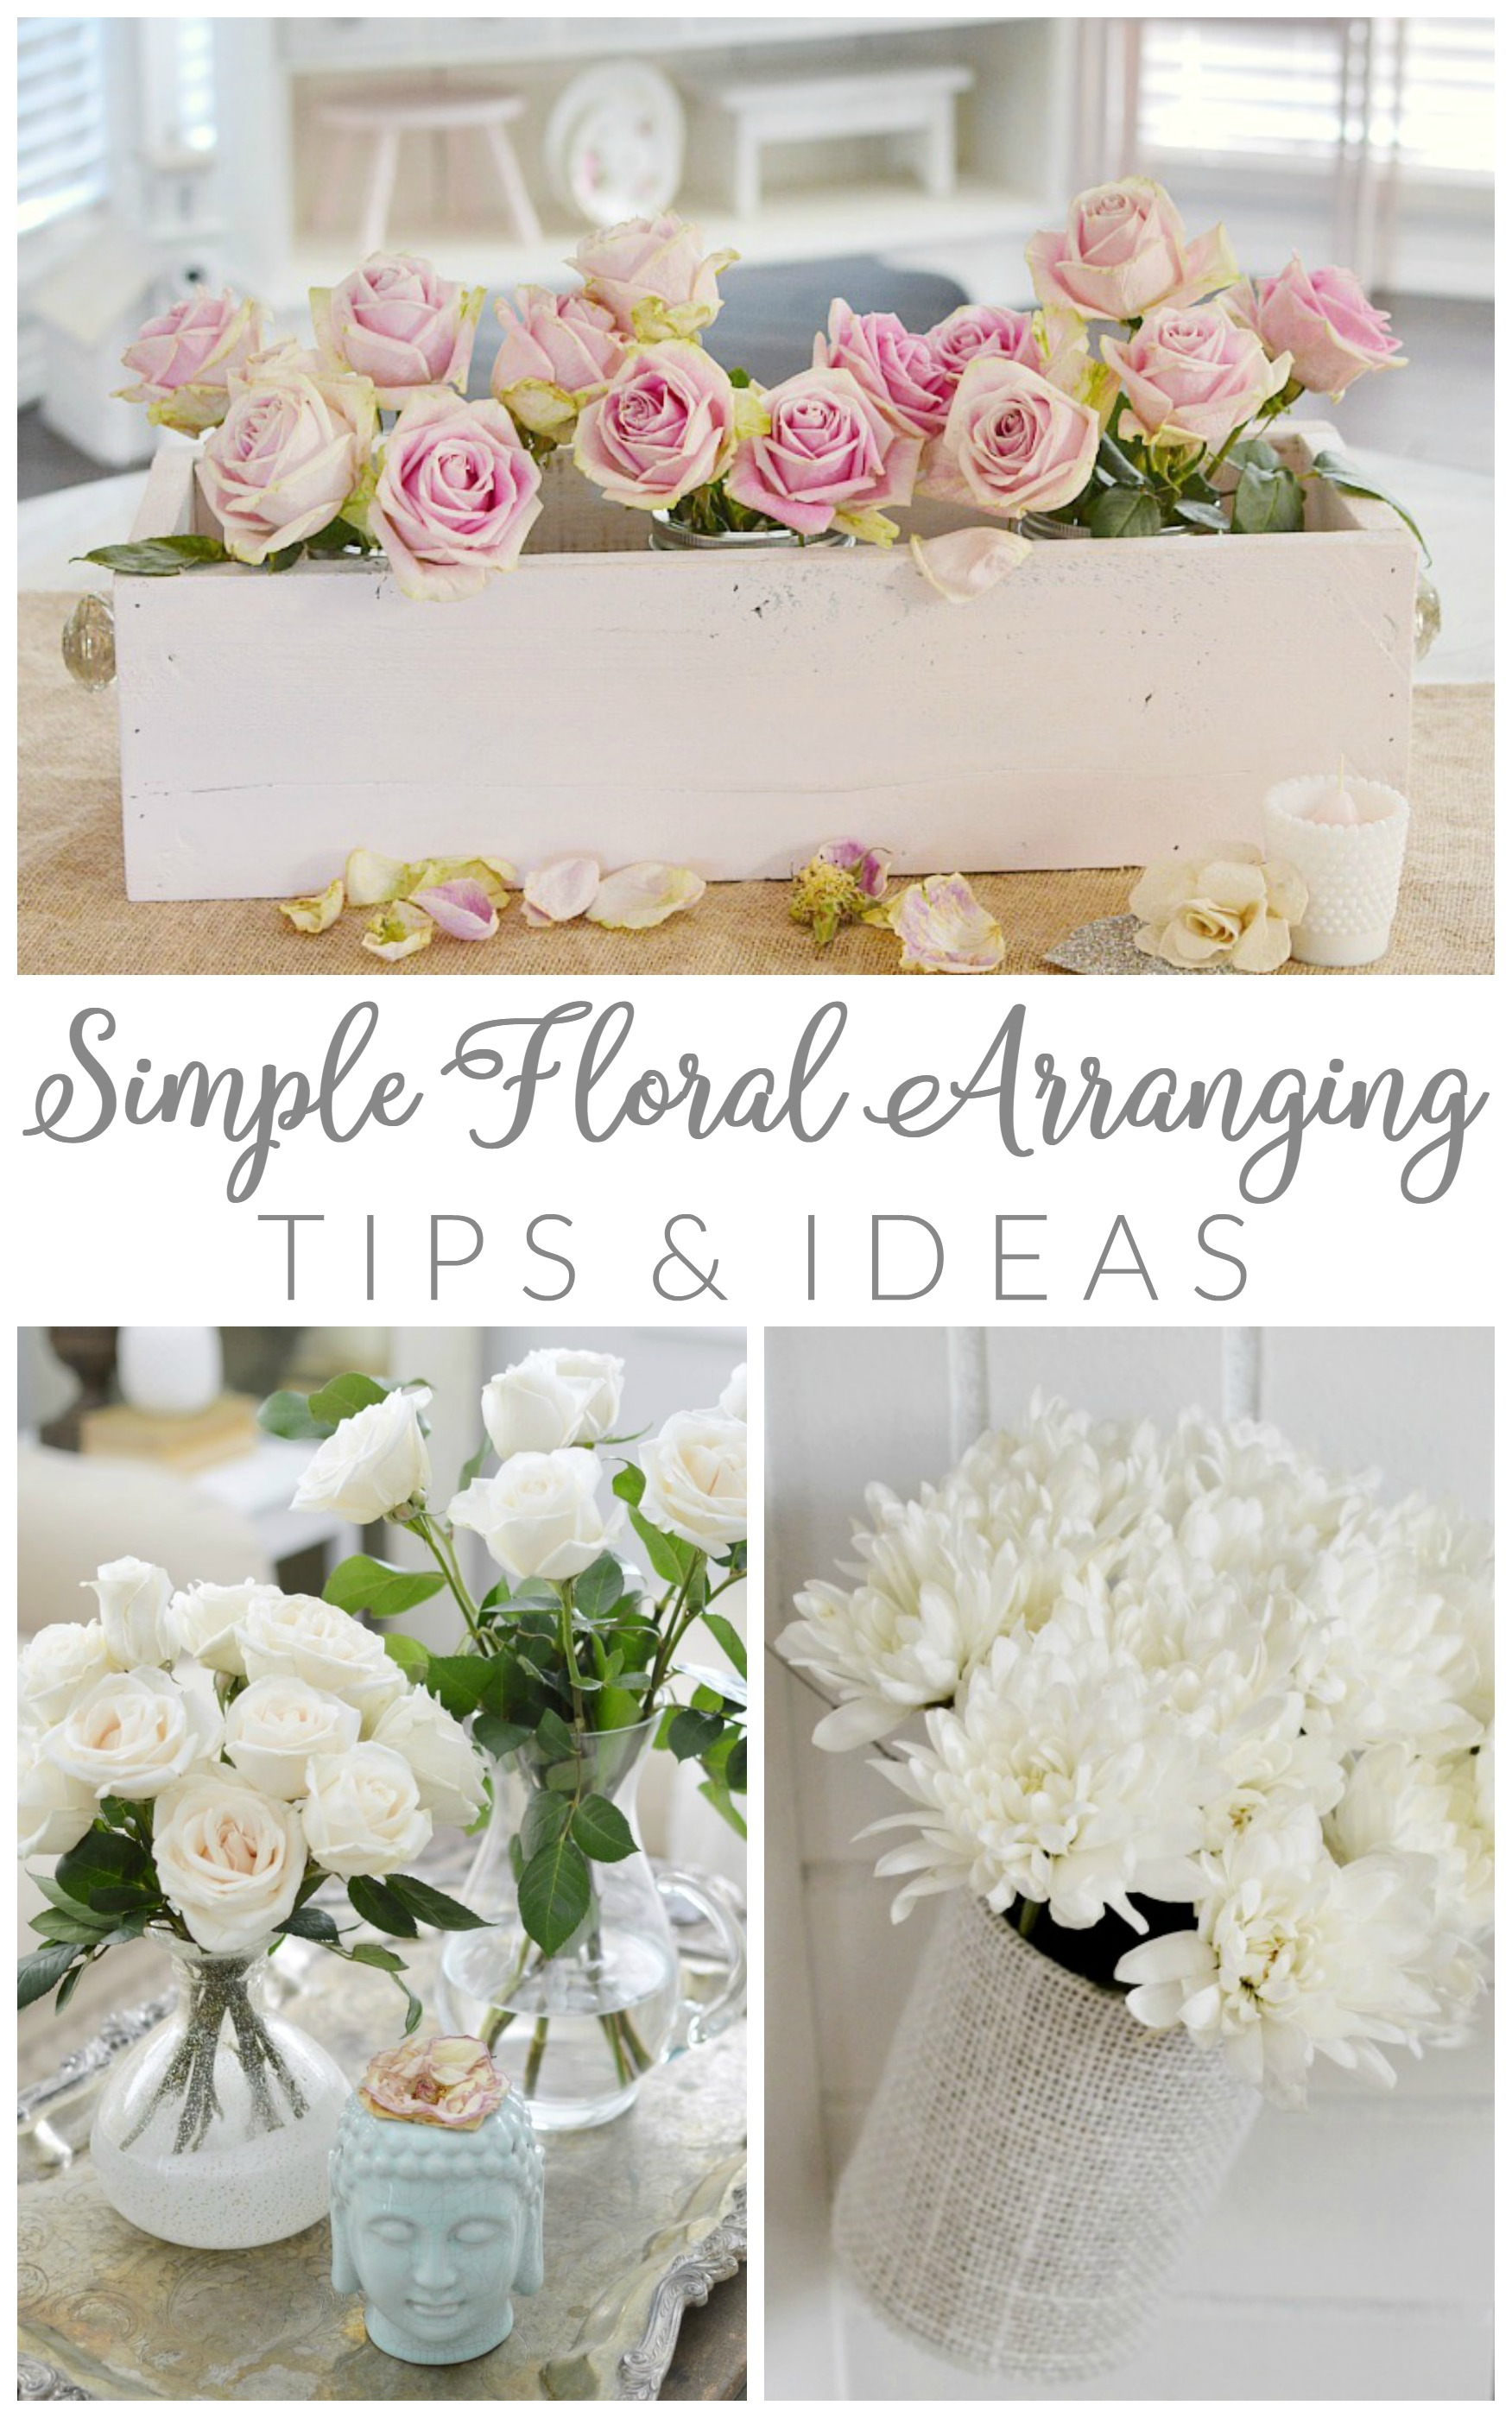 Simple ideas and tips for arranging flowers - Easy floral arrangements ideas ...